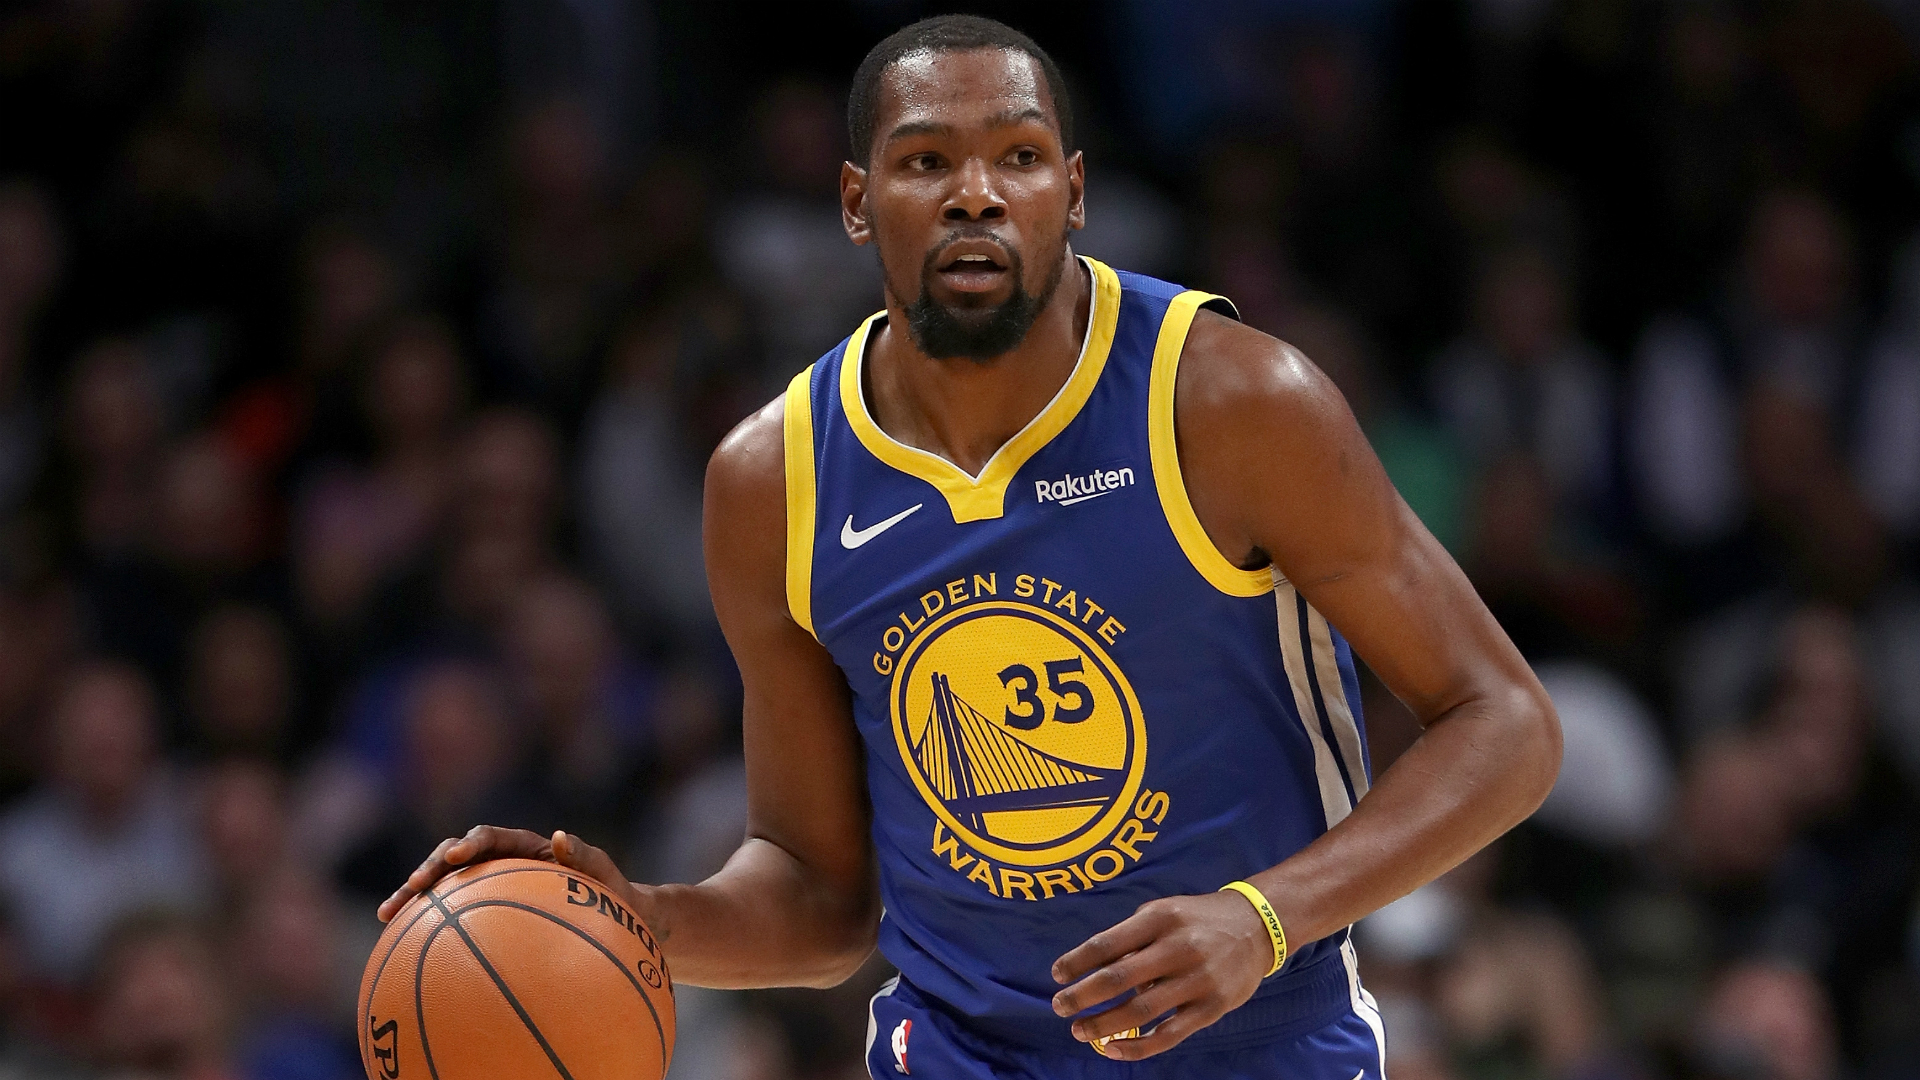 Kevin Durant will miss Games 3 and 4 against Trail Blazers